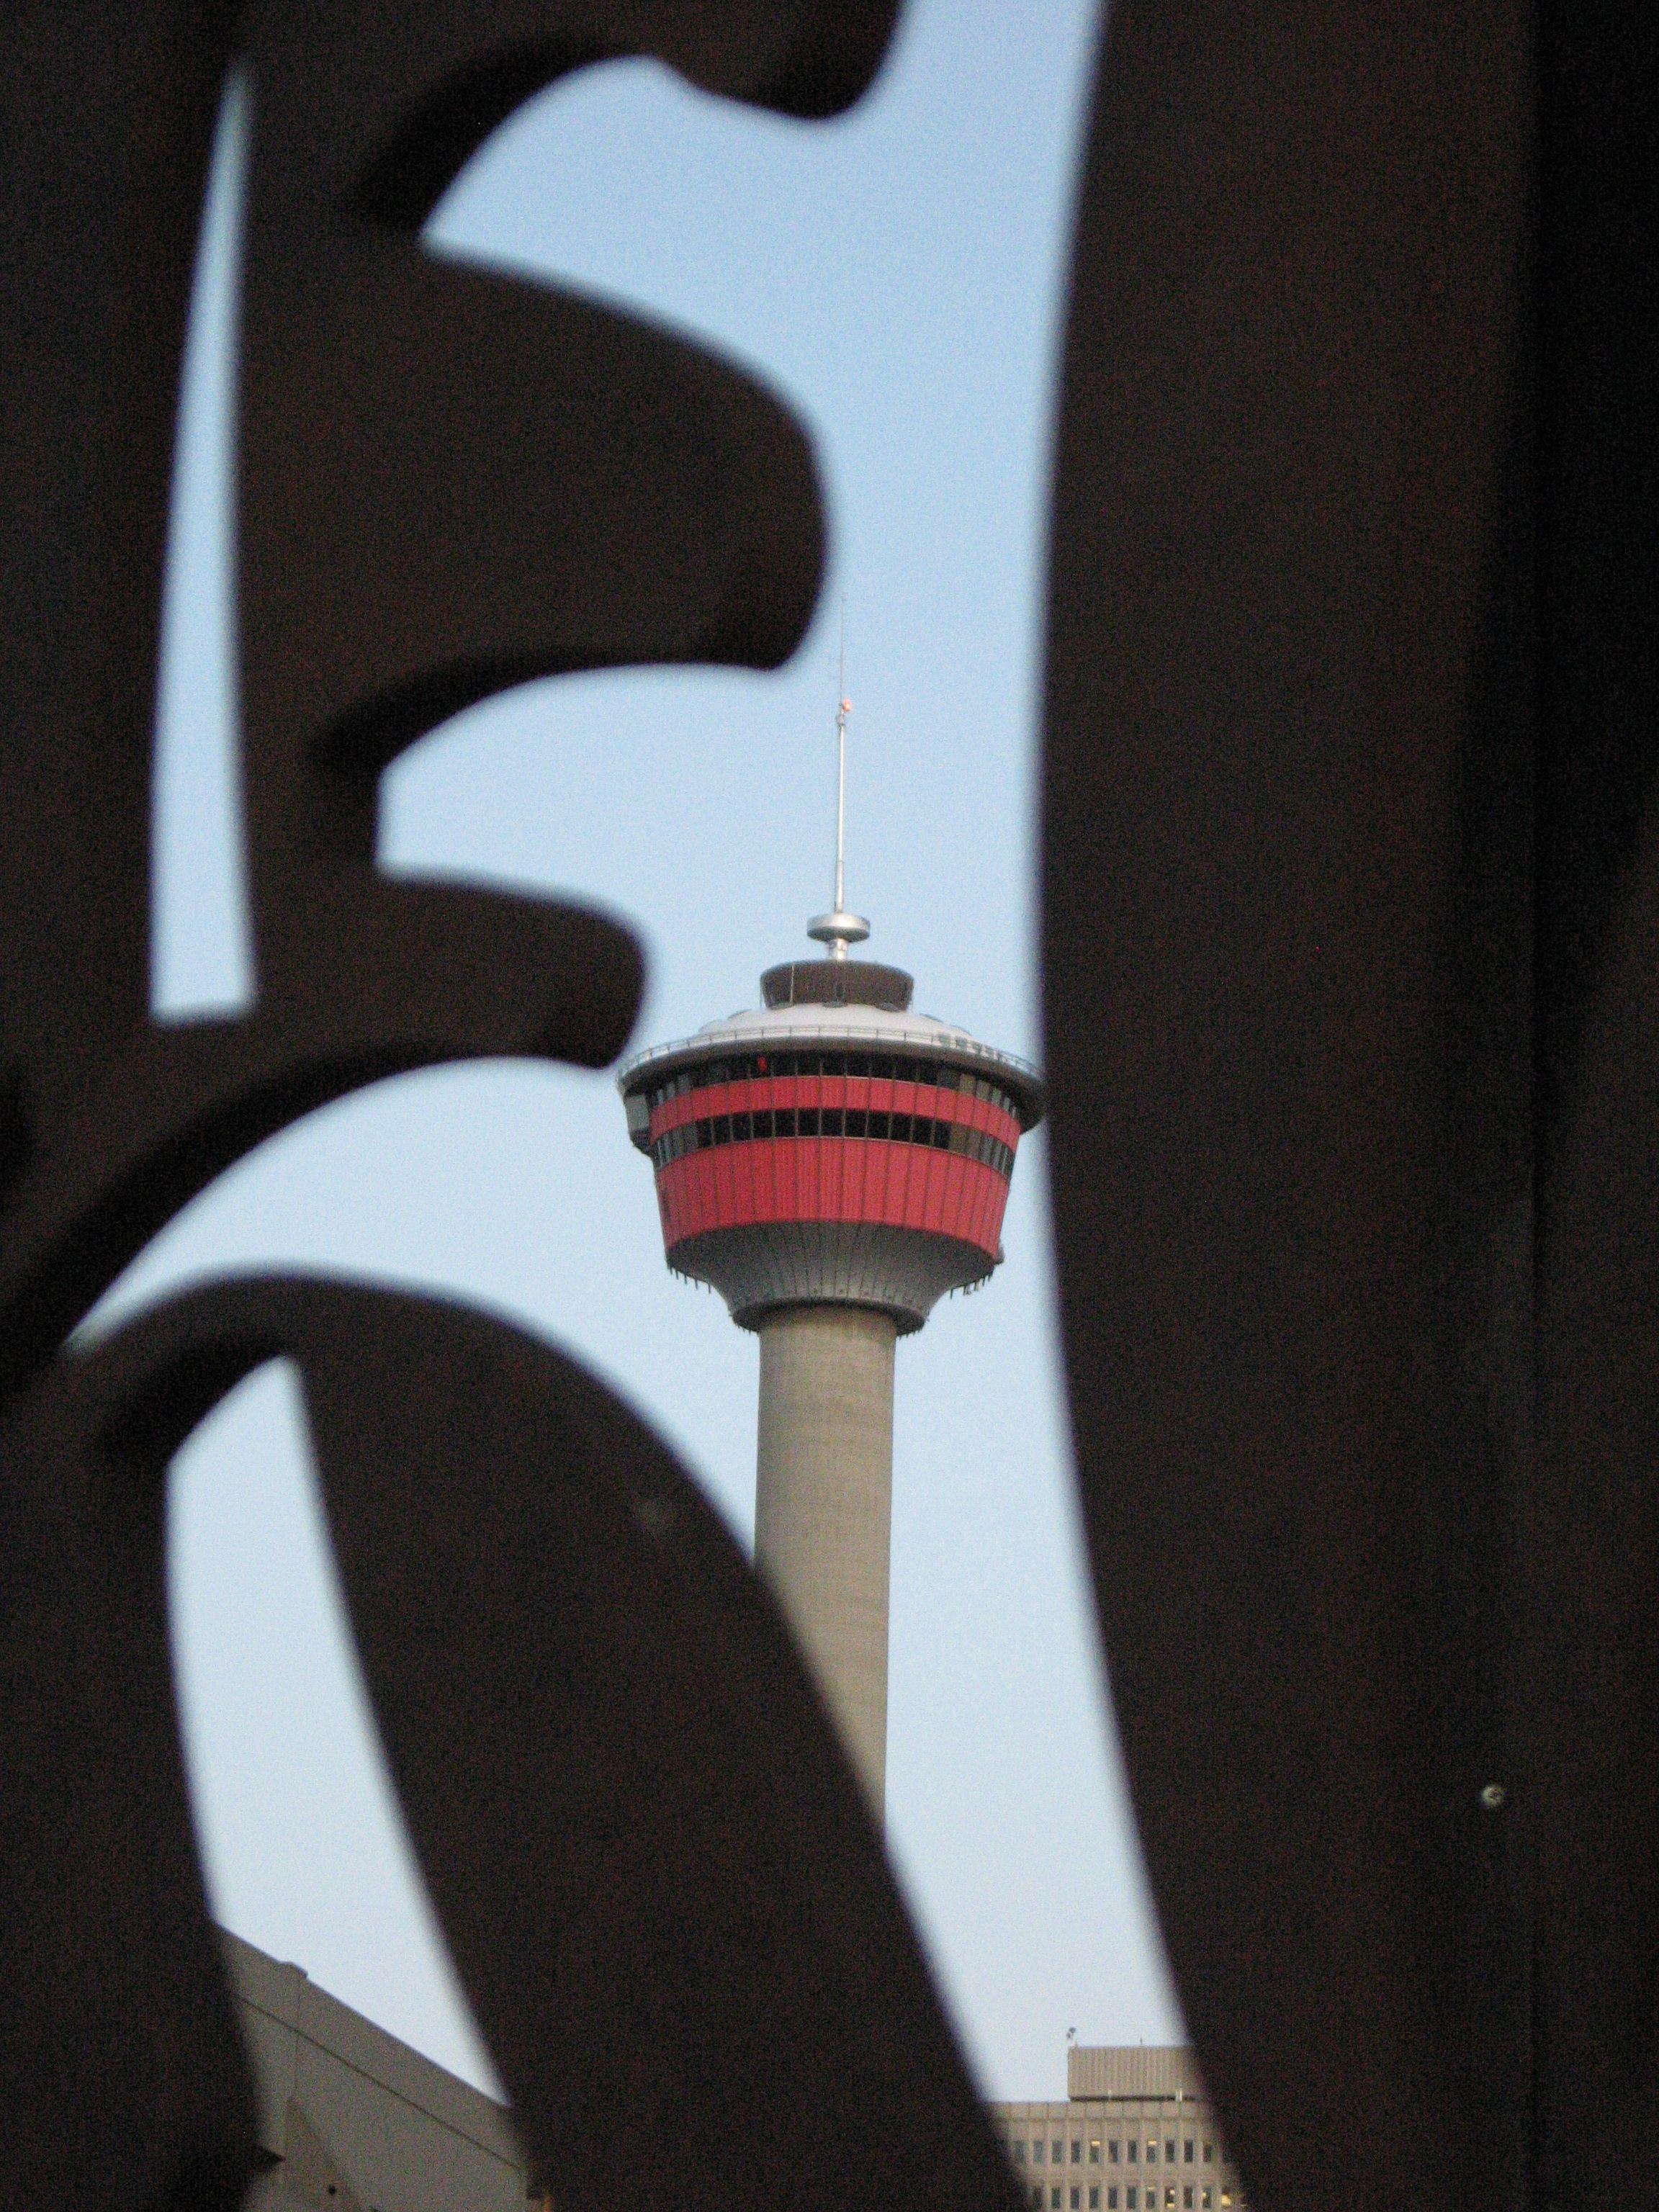 The Calgary Tower is definitely one of our past icons.  It is not longer the tallest structure in the city, however, it does pop up in the most unexpected places as it pops in and out of view.  It could be our mid-century modern icon with its Jetson like design.